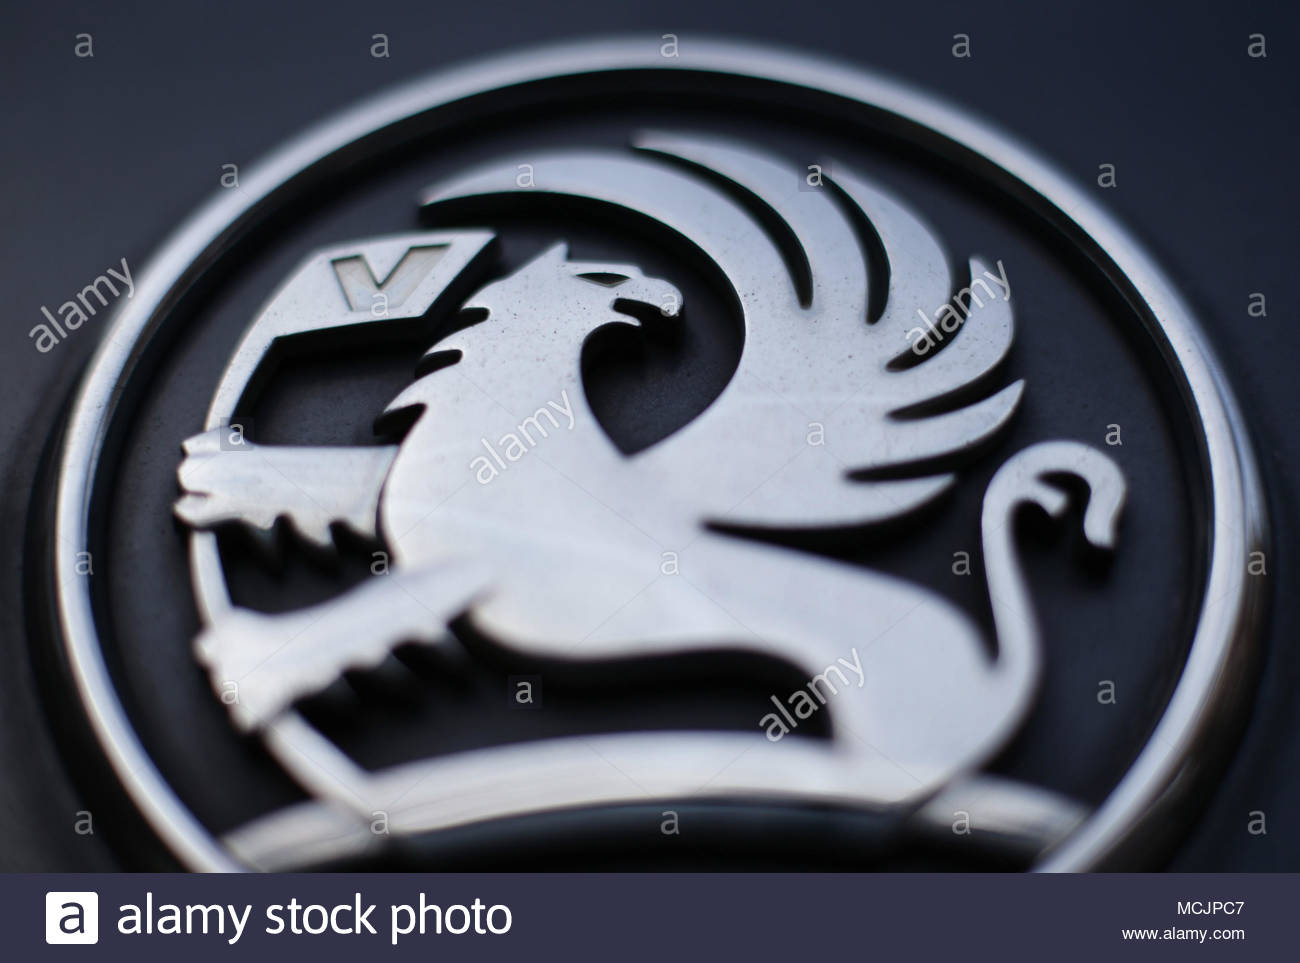 Dealerships That Buy Cars >> File Photo Dated 06 03 17 Of The Griffin Badge On The Front